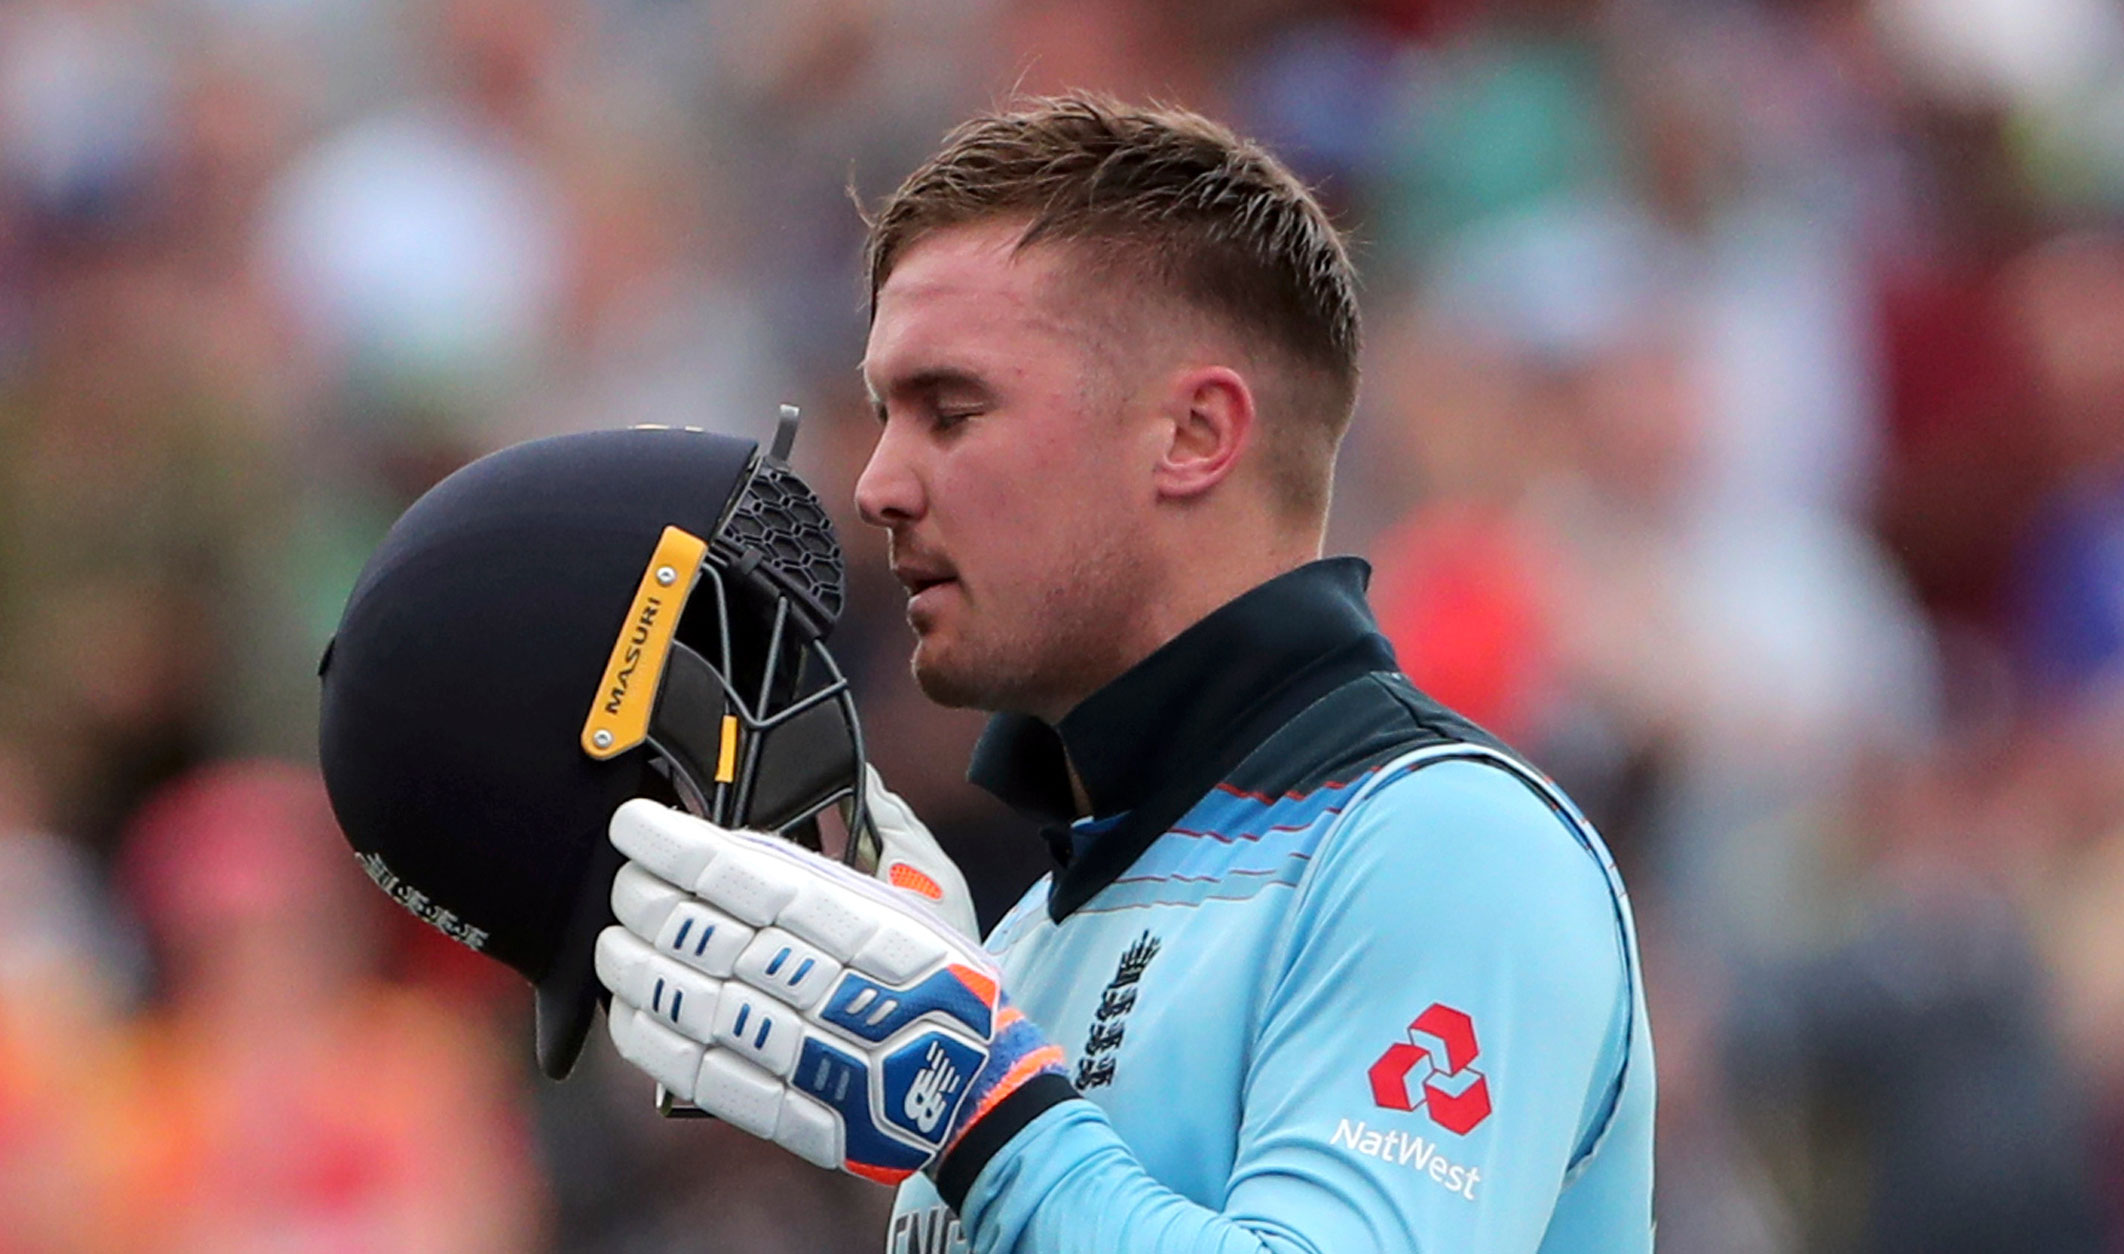 Jason Roy during the ICC Cricket World Cup semifinal match between England and Australia at Edgbaston in Birmingham, on July 11, 2019.